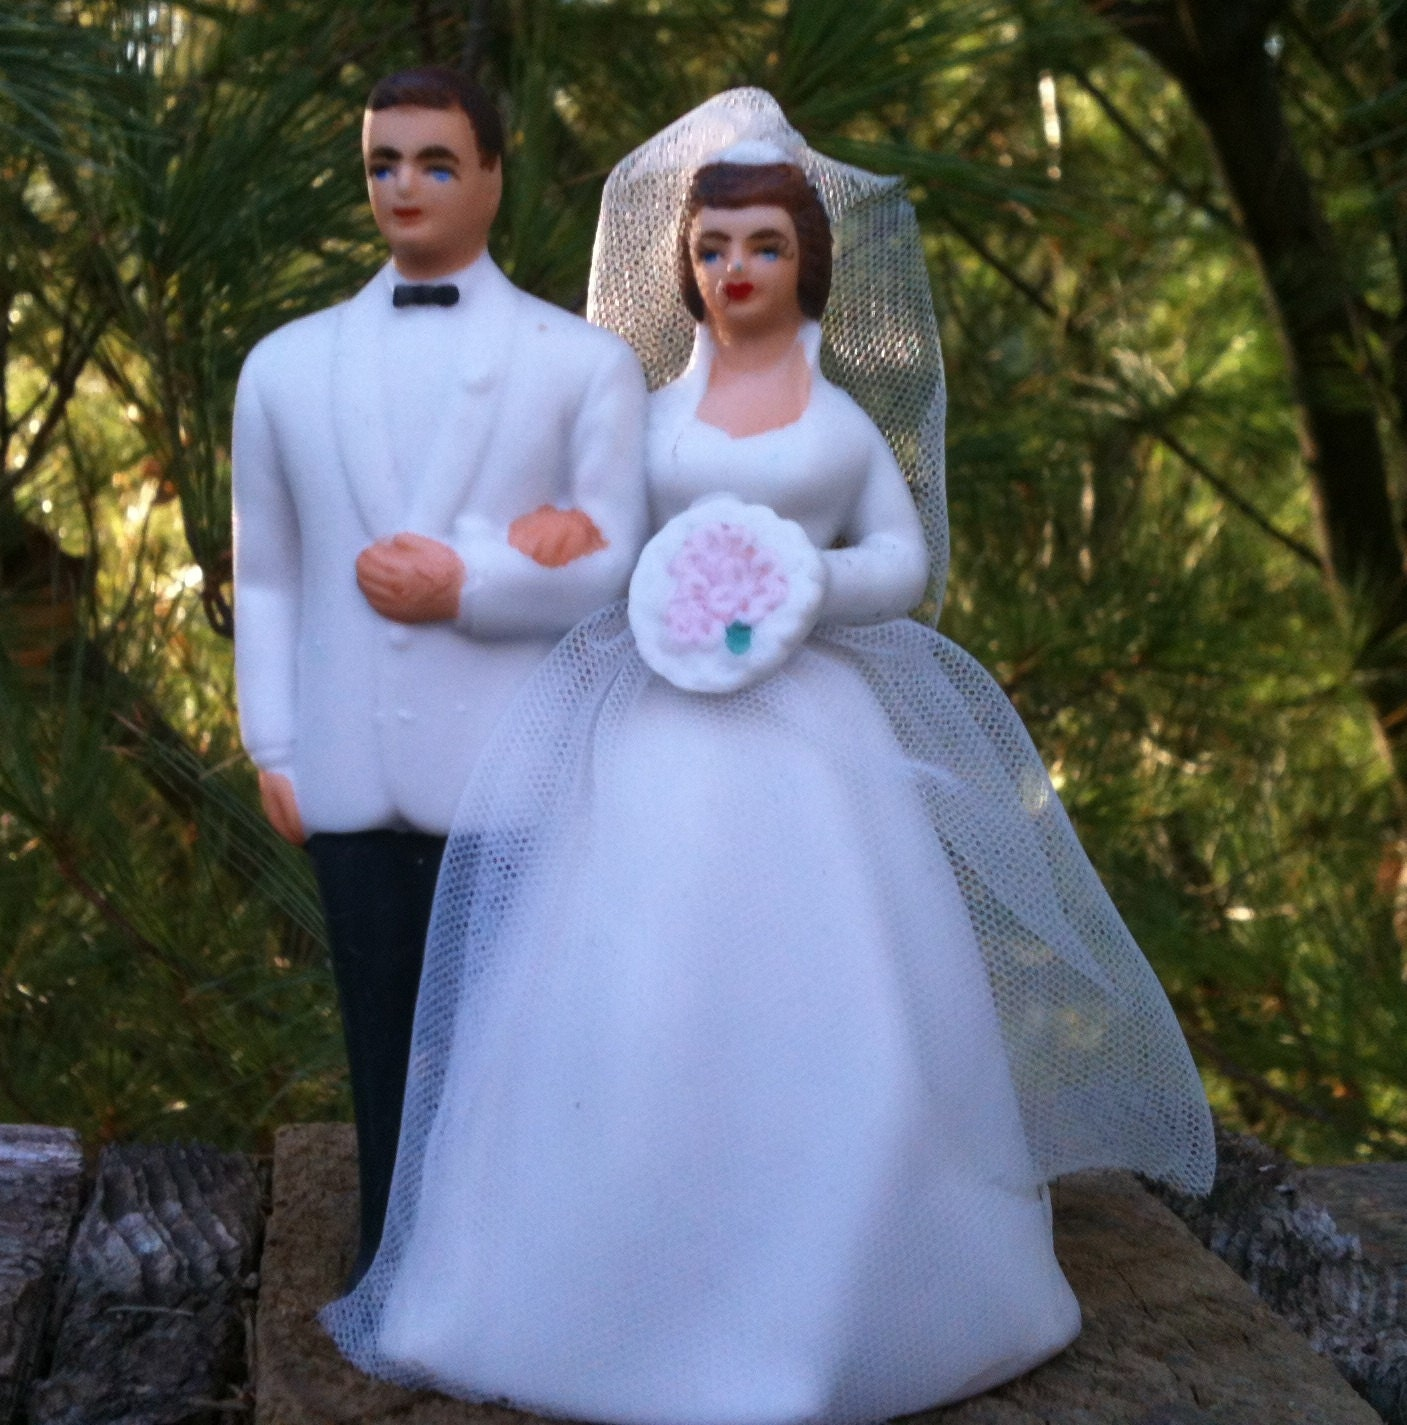 Wilton Bride And Groom Vintage Wedding Cake Topper Porcelain-9171